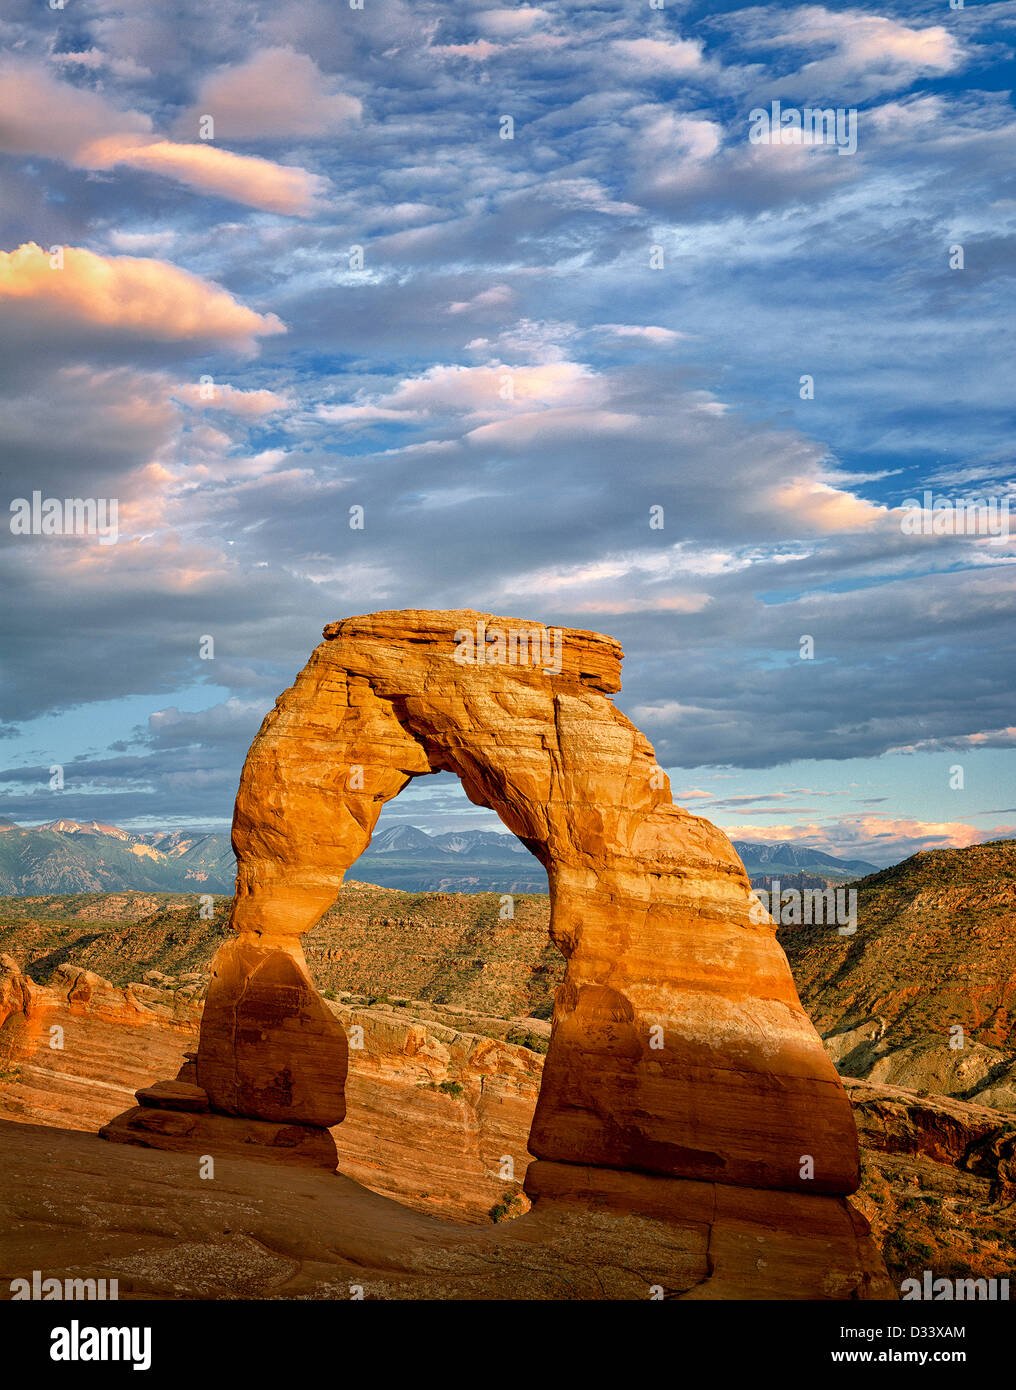 Delicate Arch at sunset. Arches National Park. Utah. - Stock Image